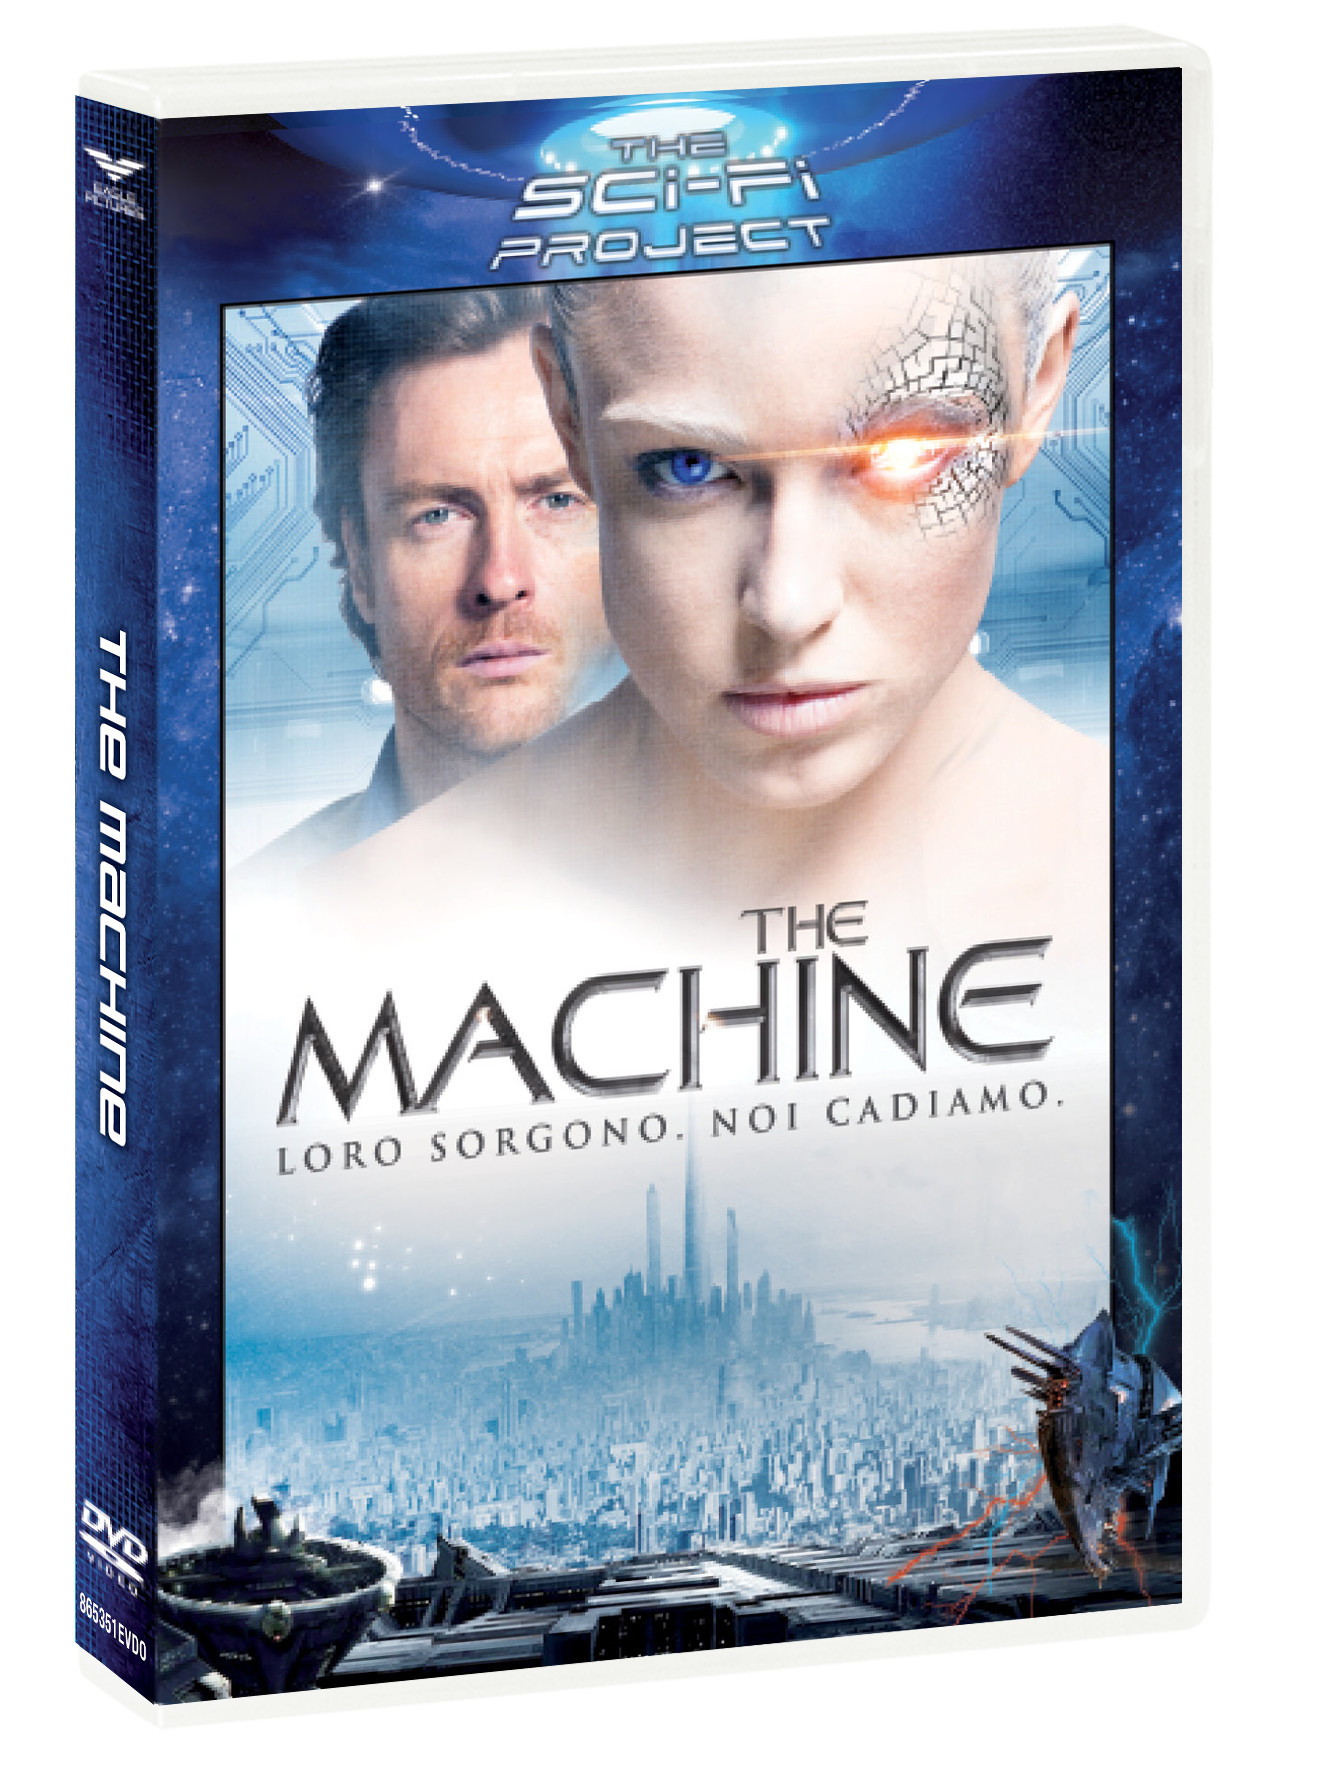 THE MACHINE (SCI-FI PROJECT) (DVD)